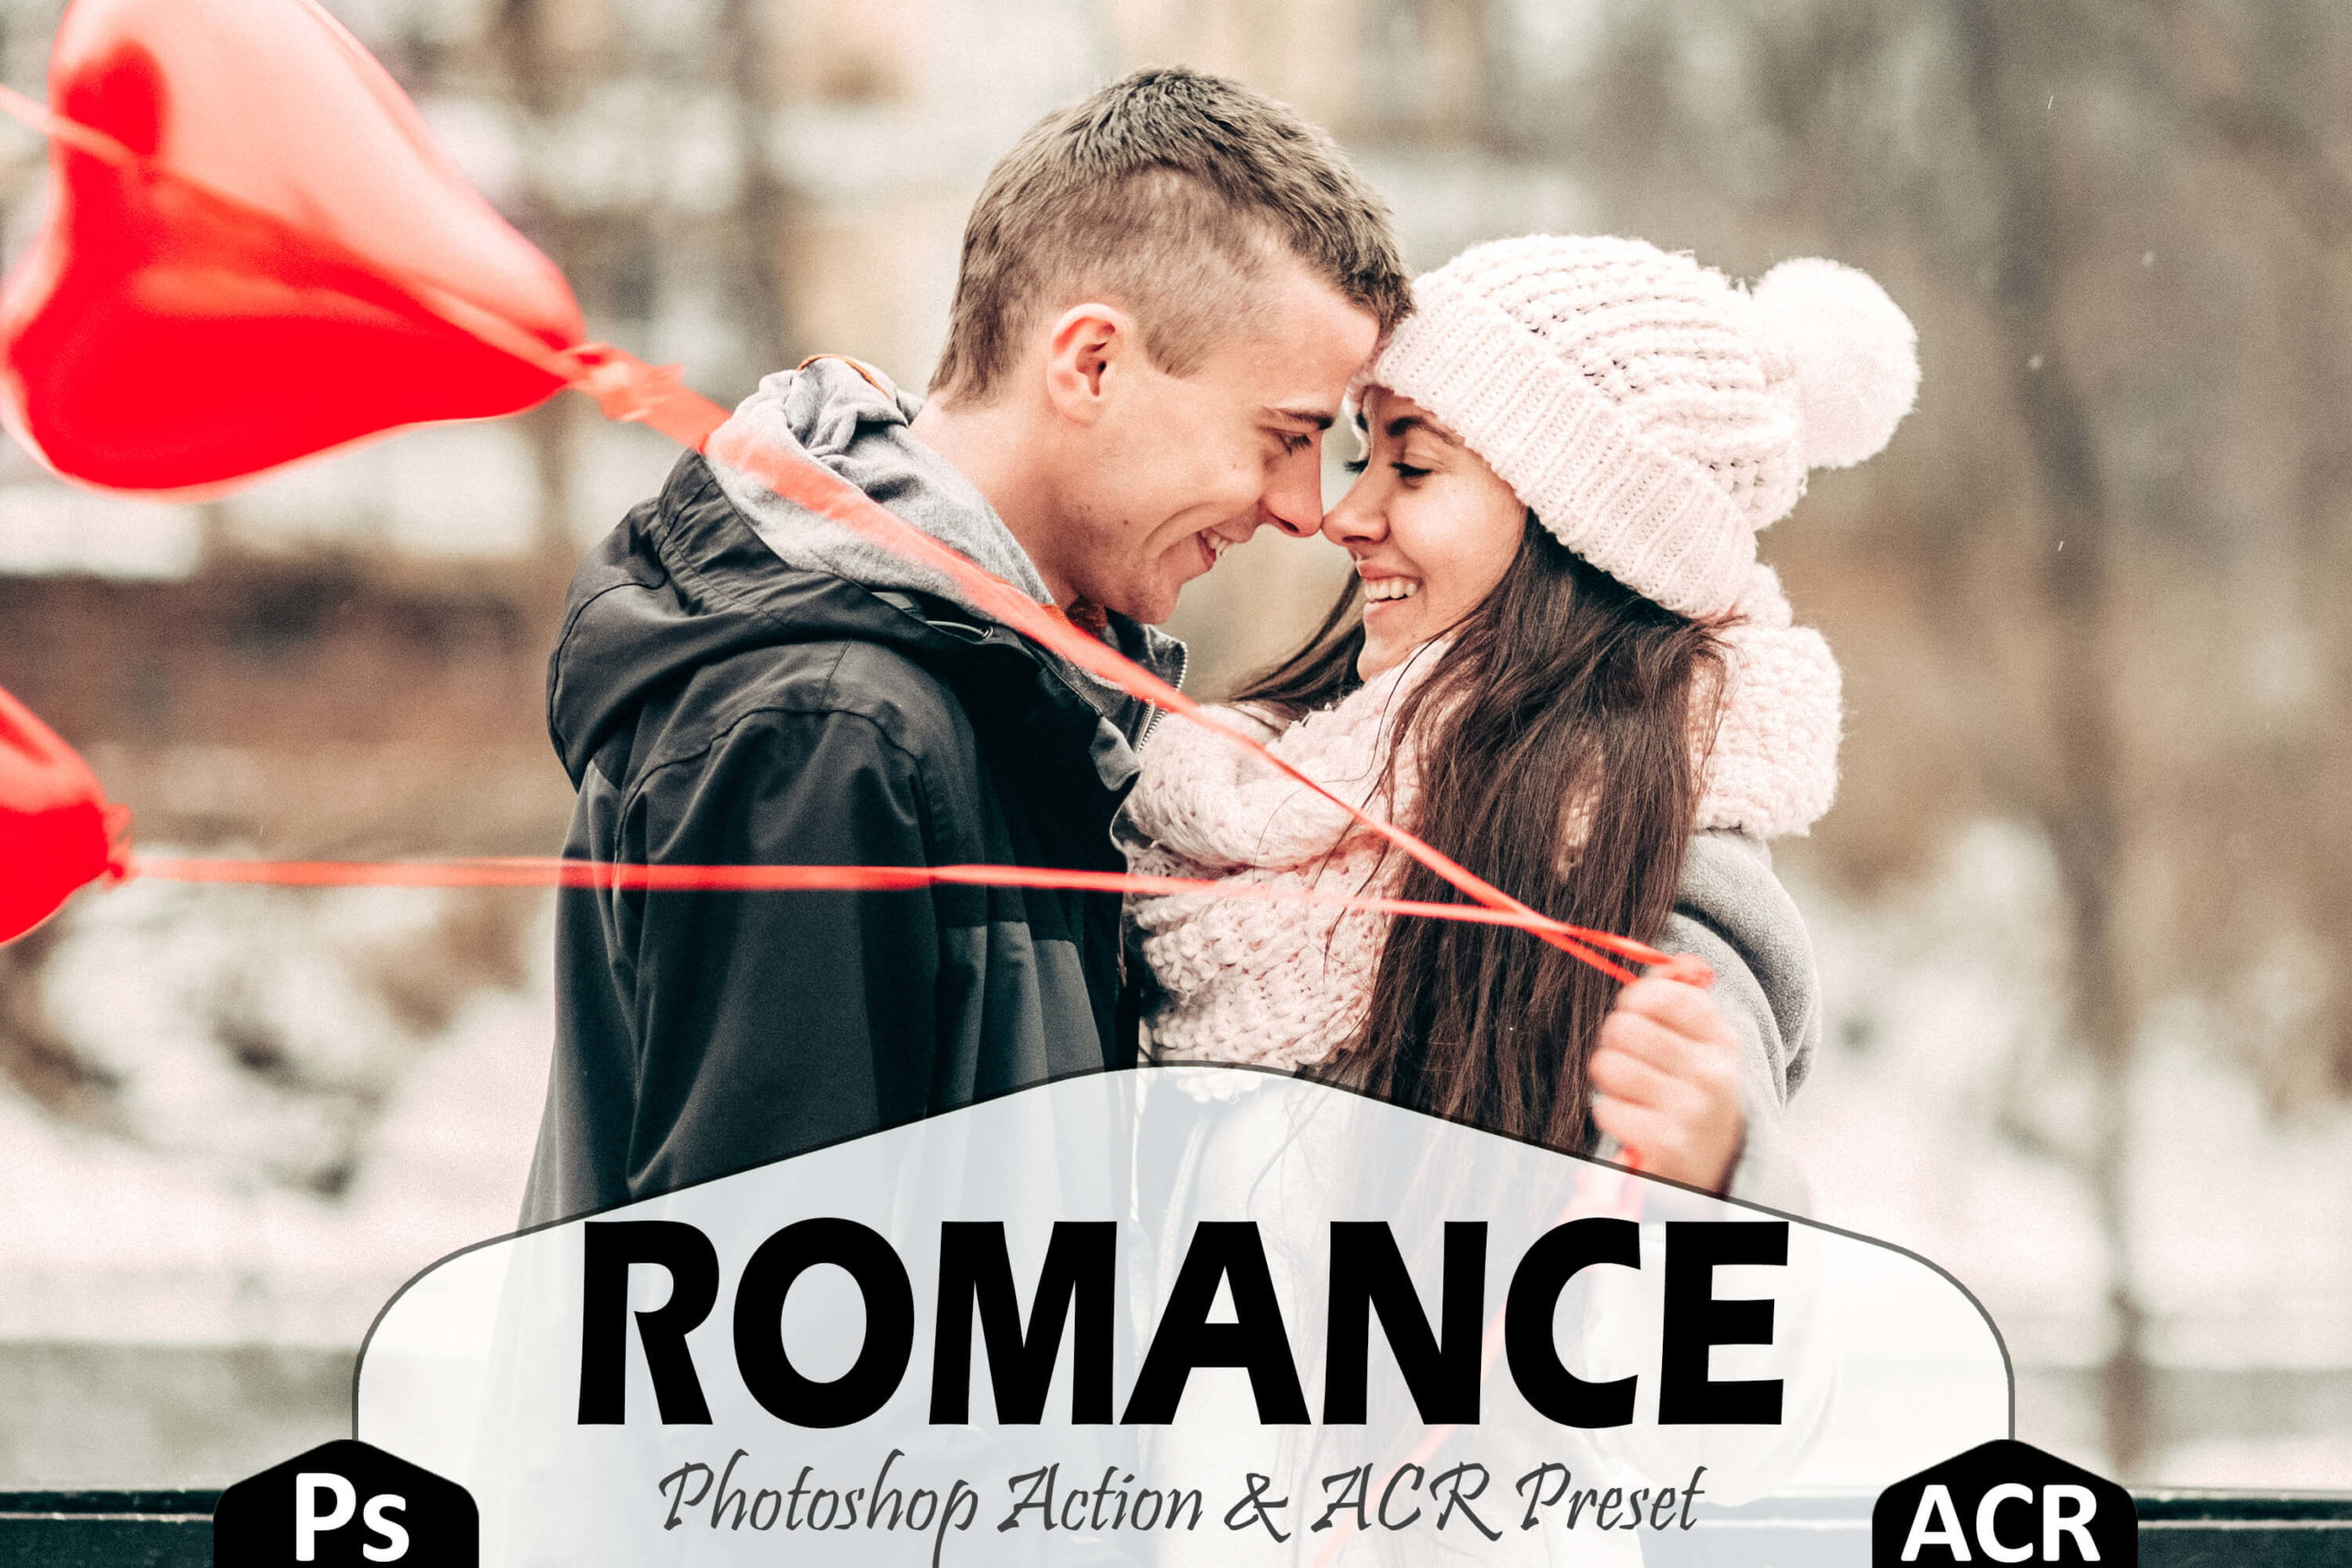 https://filtergrade.com/product/10-romance-photoshop-actions-lut-presets/